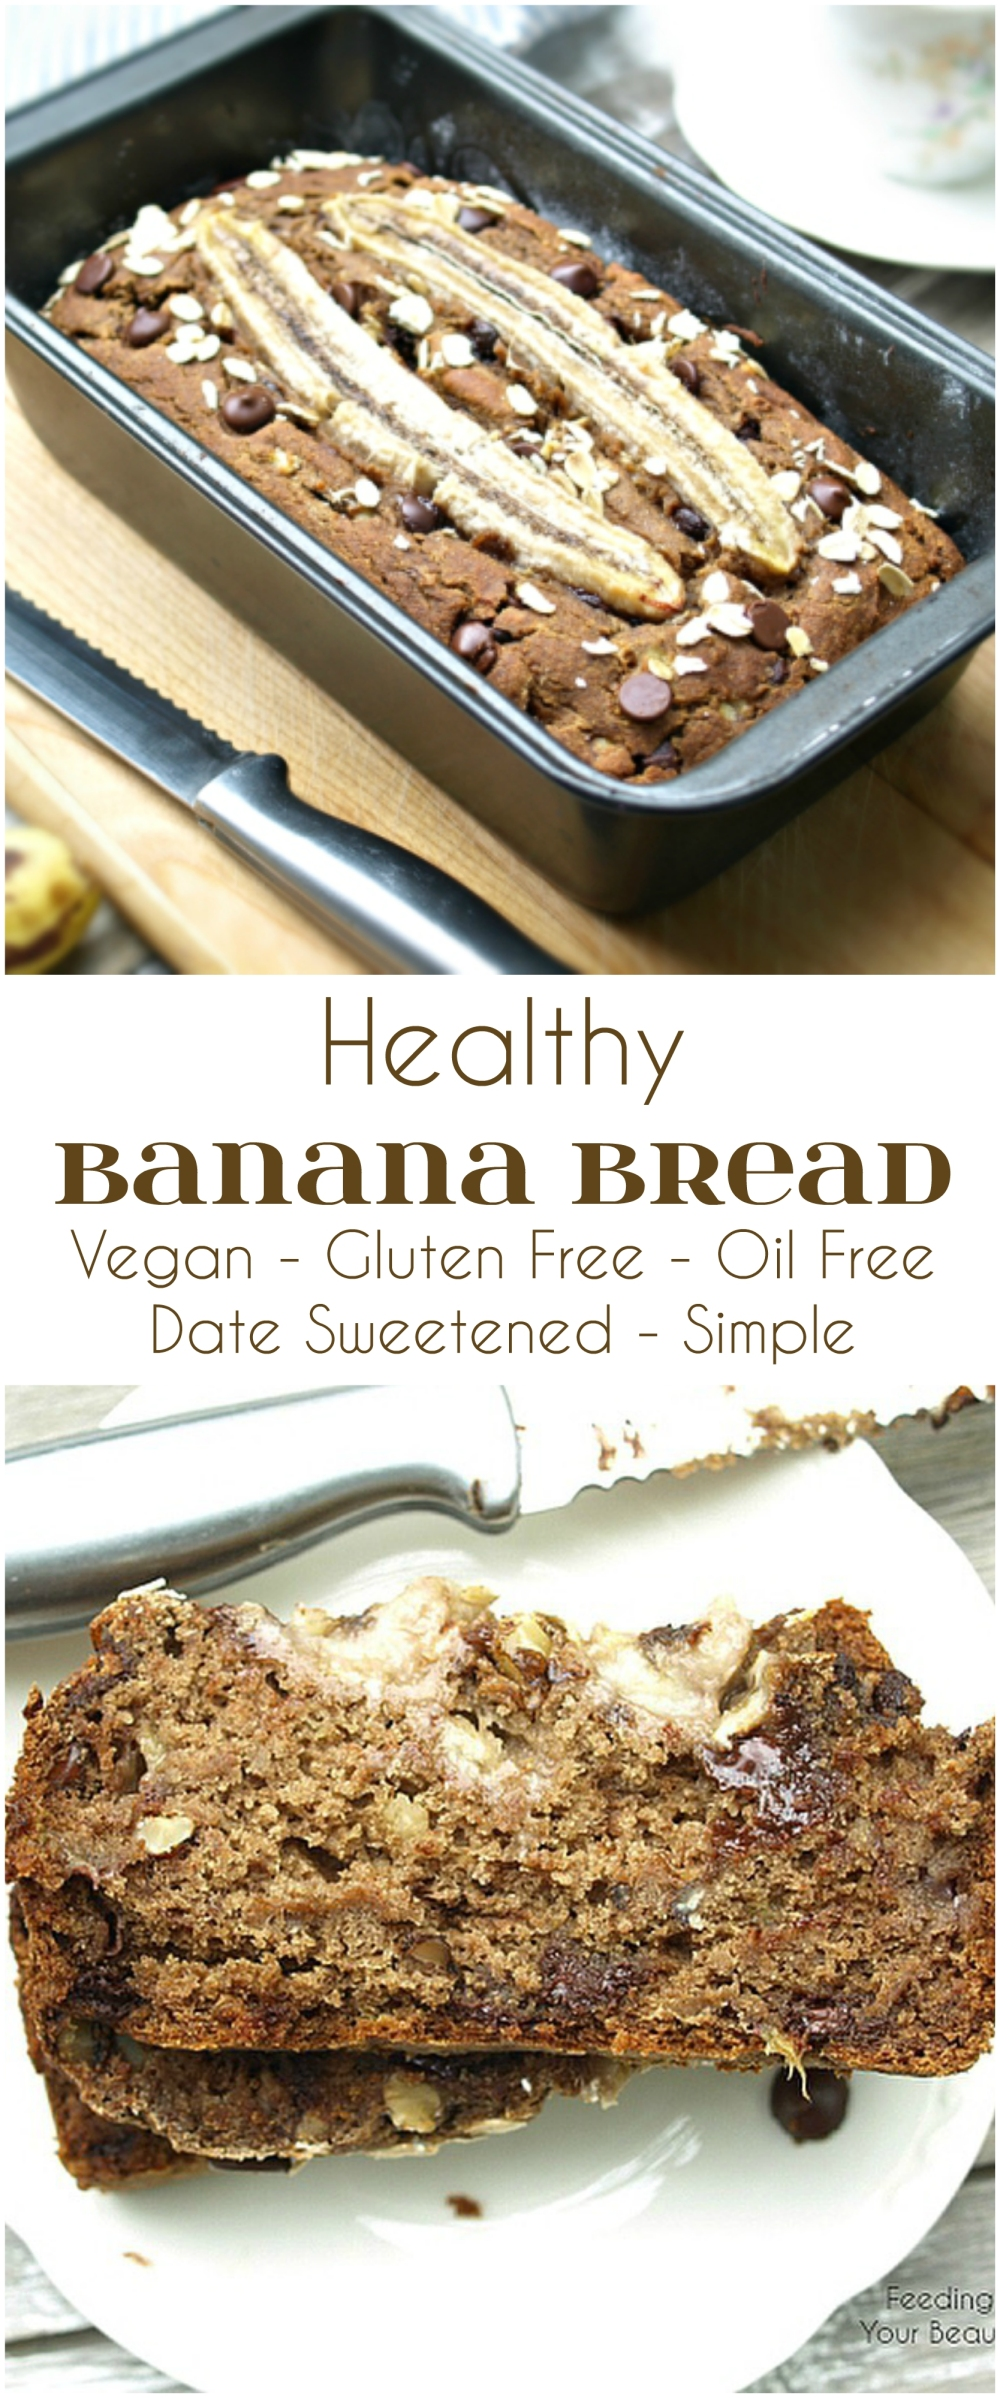 Healthy Banana Bread - Vegan, Gluten Free, Oil Free, Date Sweetened, Made with simple everyday ingredients!